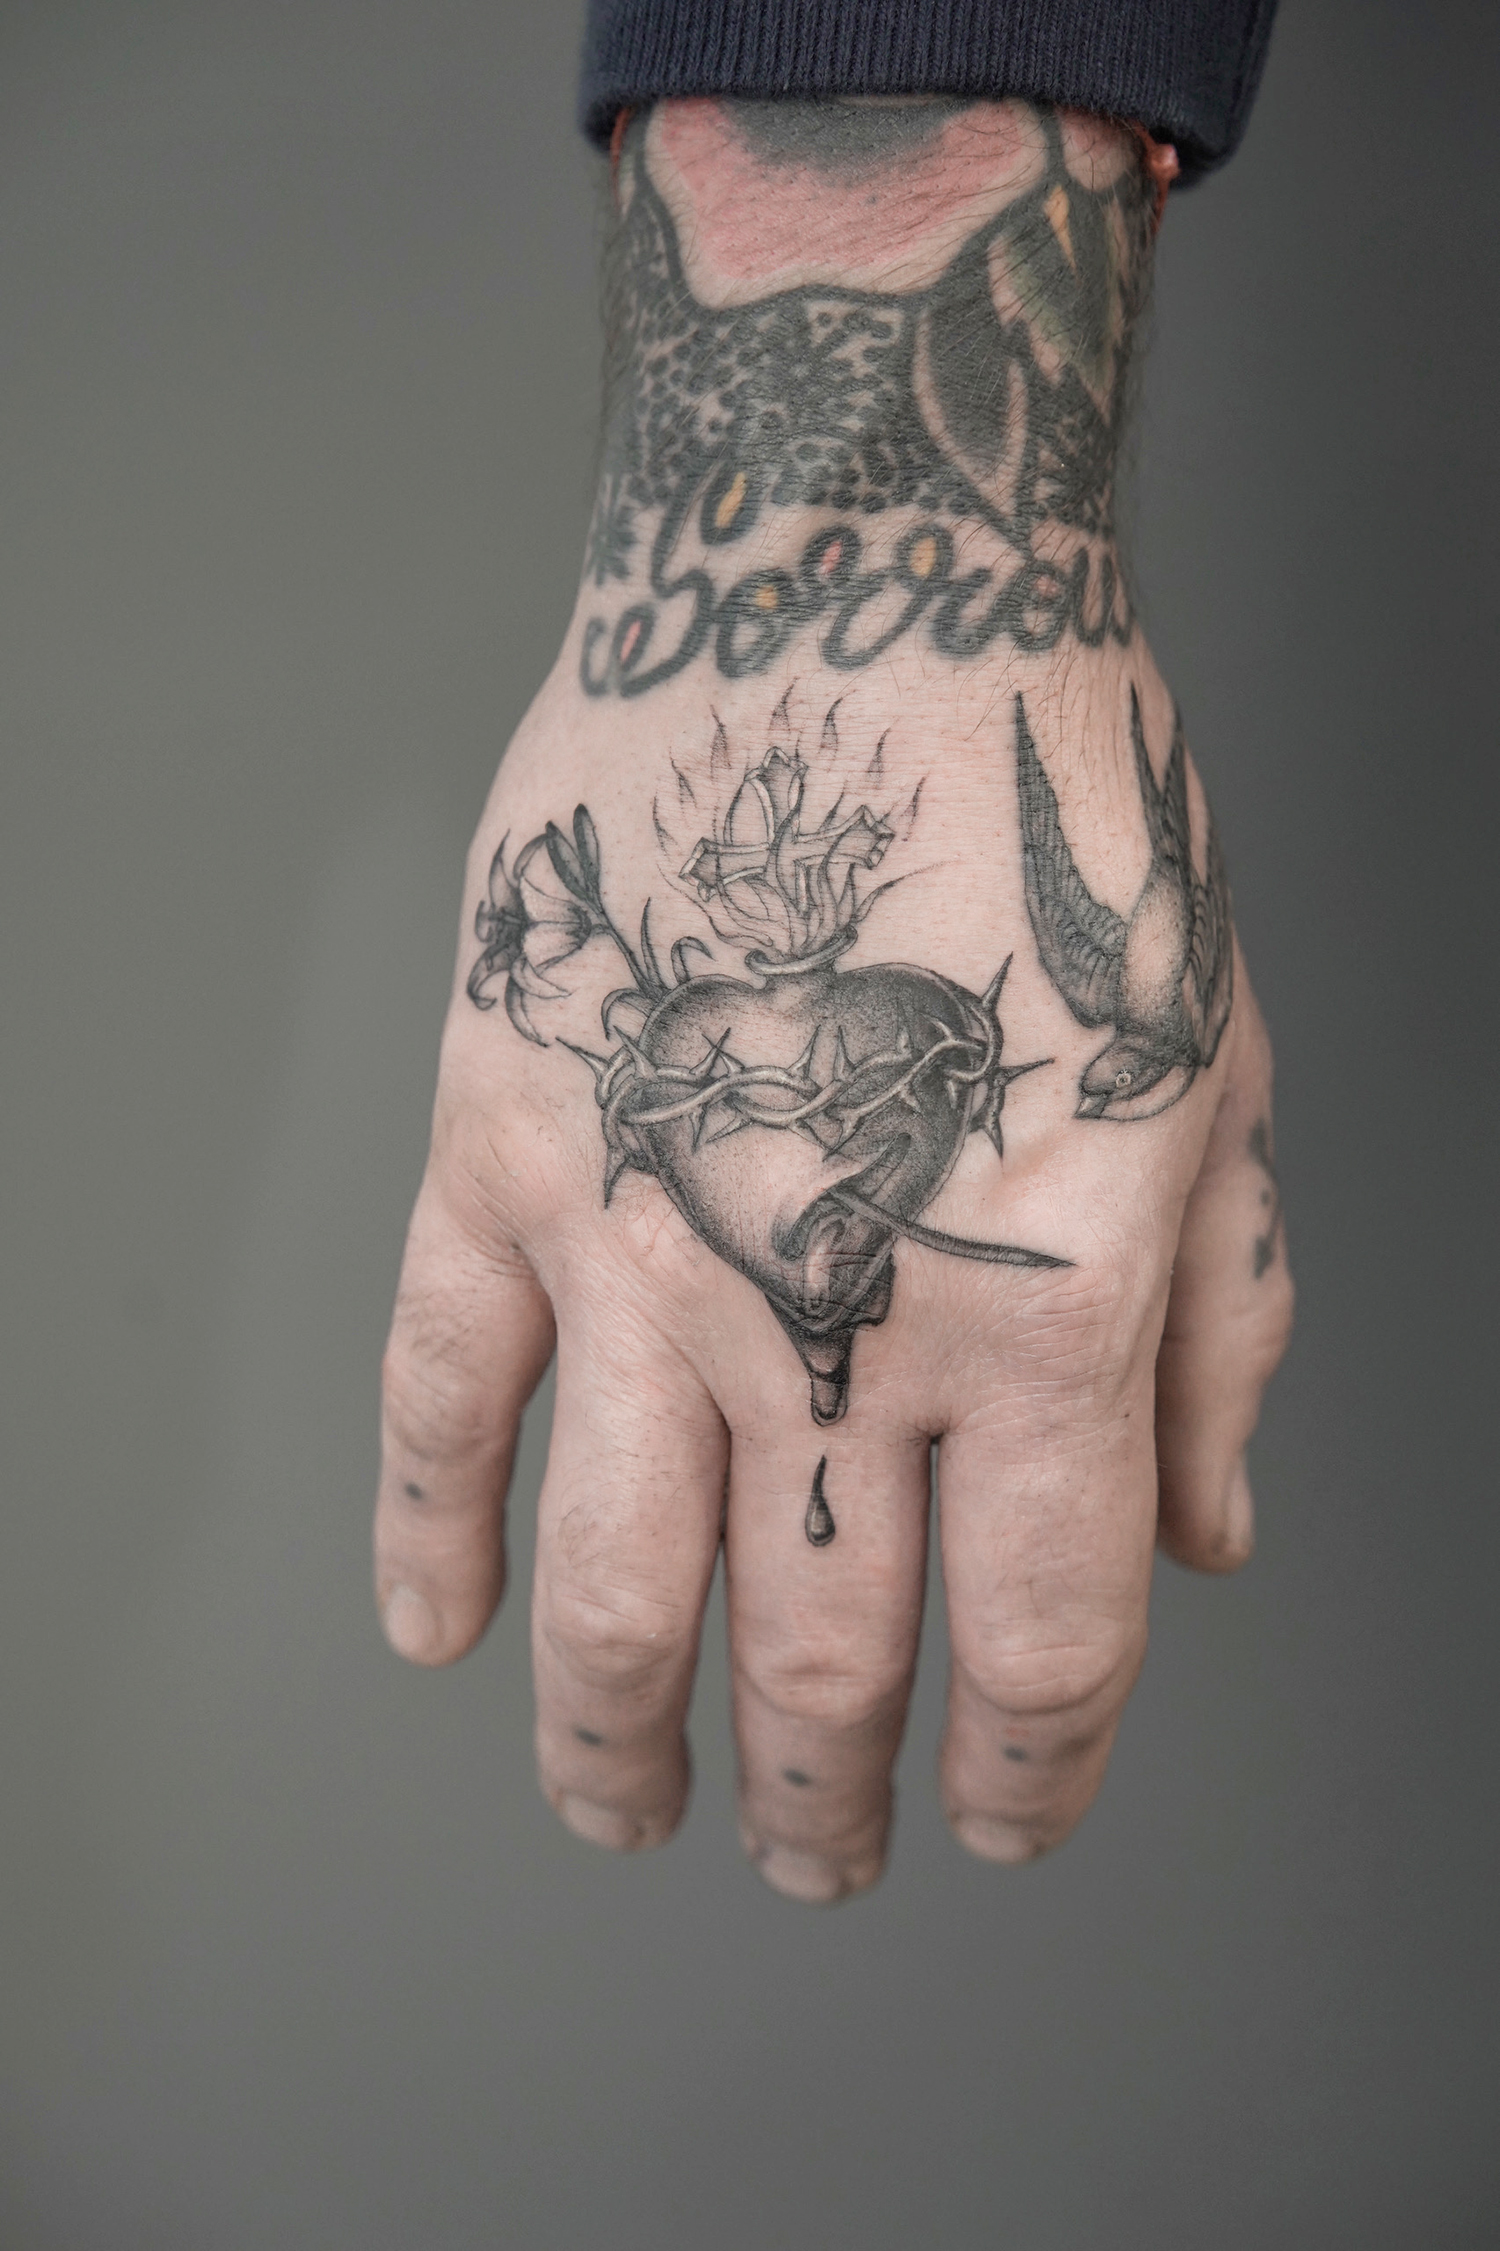 sacred heart tattoo on hand by delph musquet